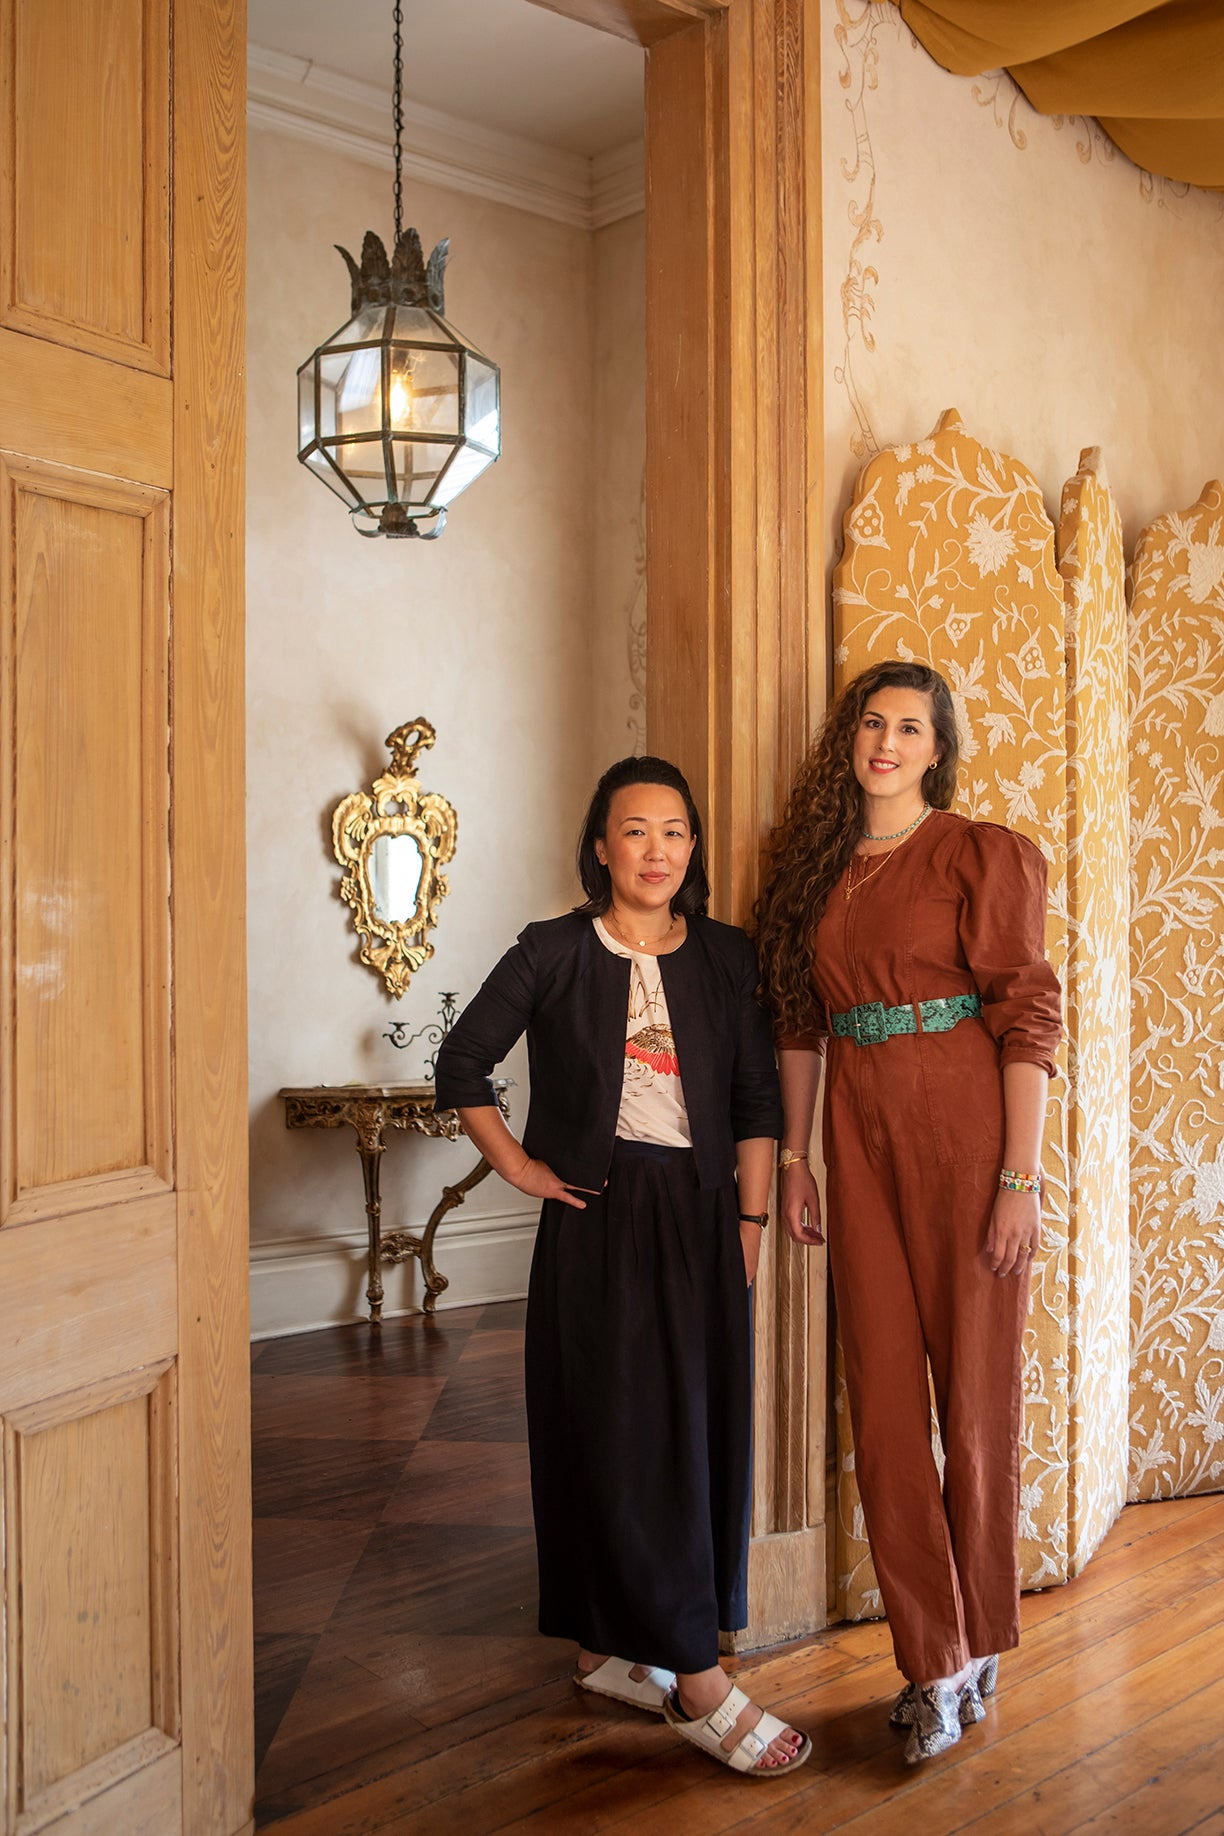 The creators of The Garden Journey, Natalie Soud and Joanne Yun, in the Hotel Peter + Paul